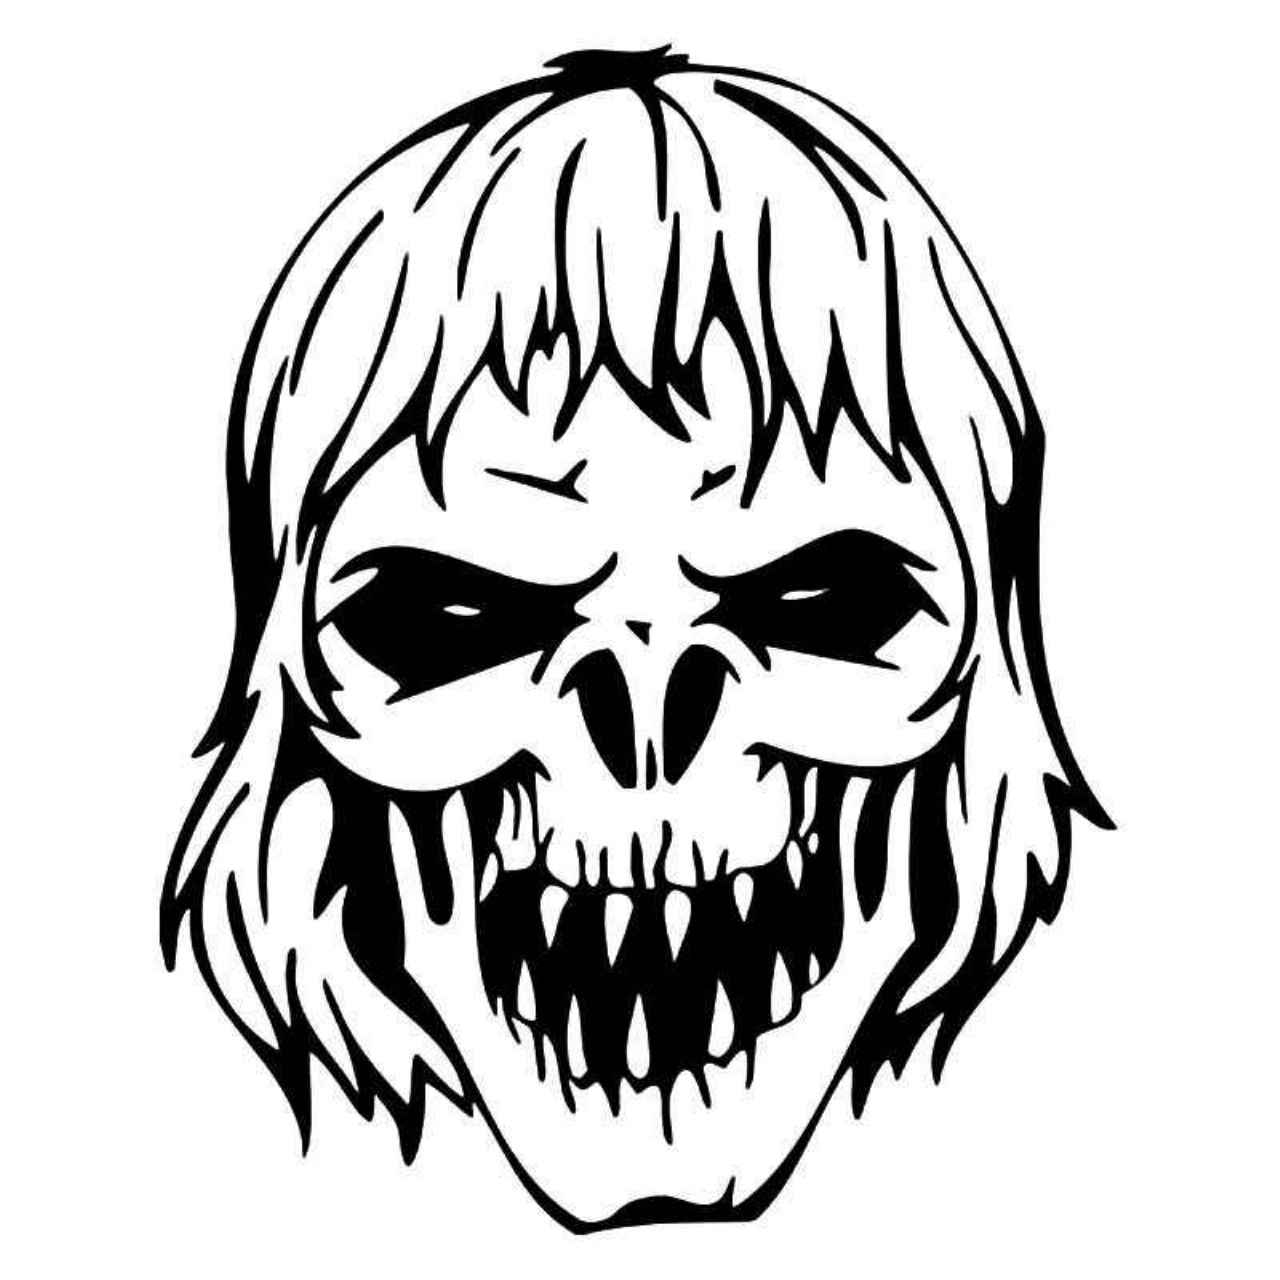 1280x1280 Zombie Skull Vinyl Decal Sticker Adhesive